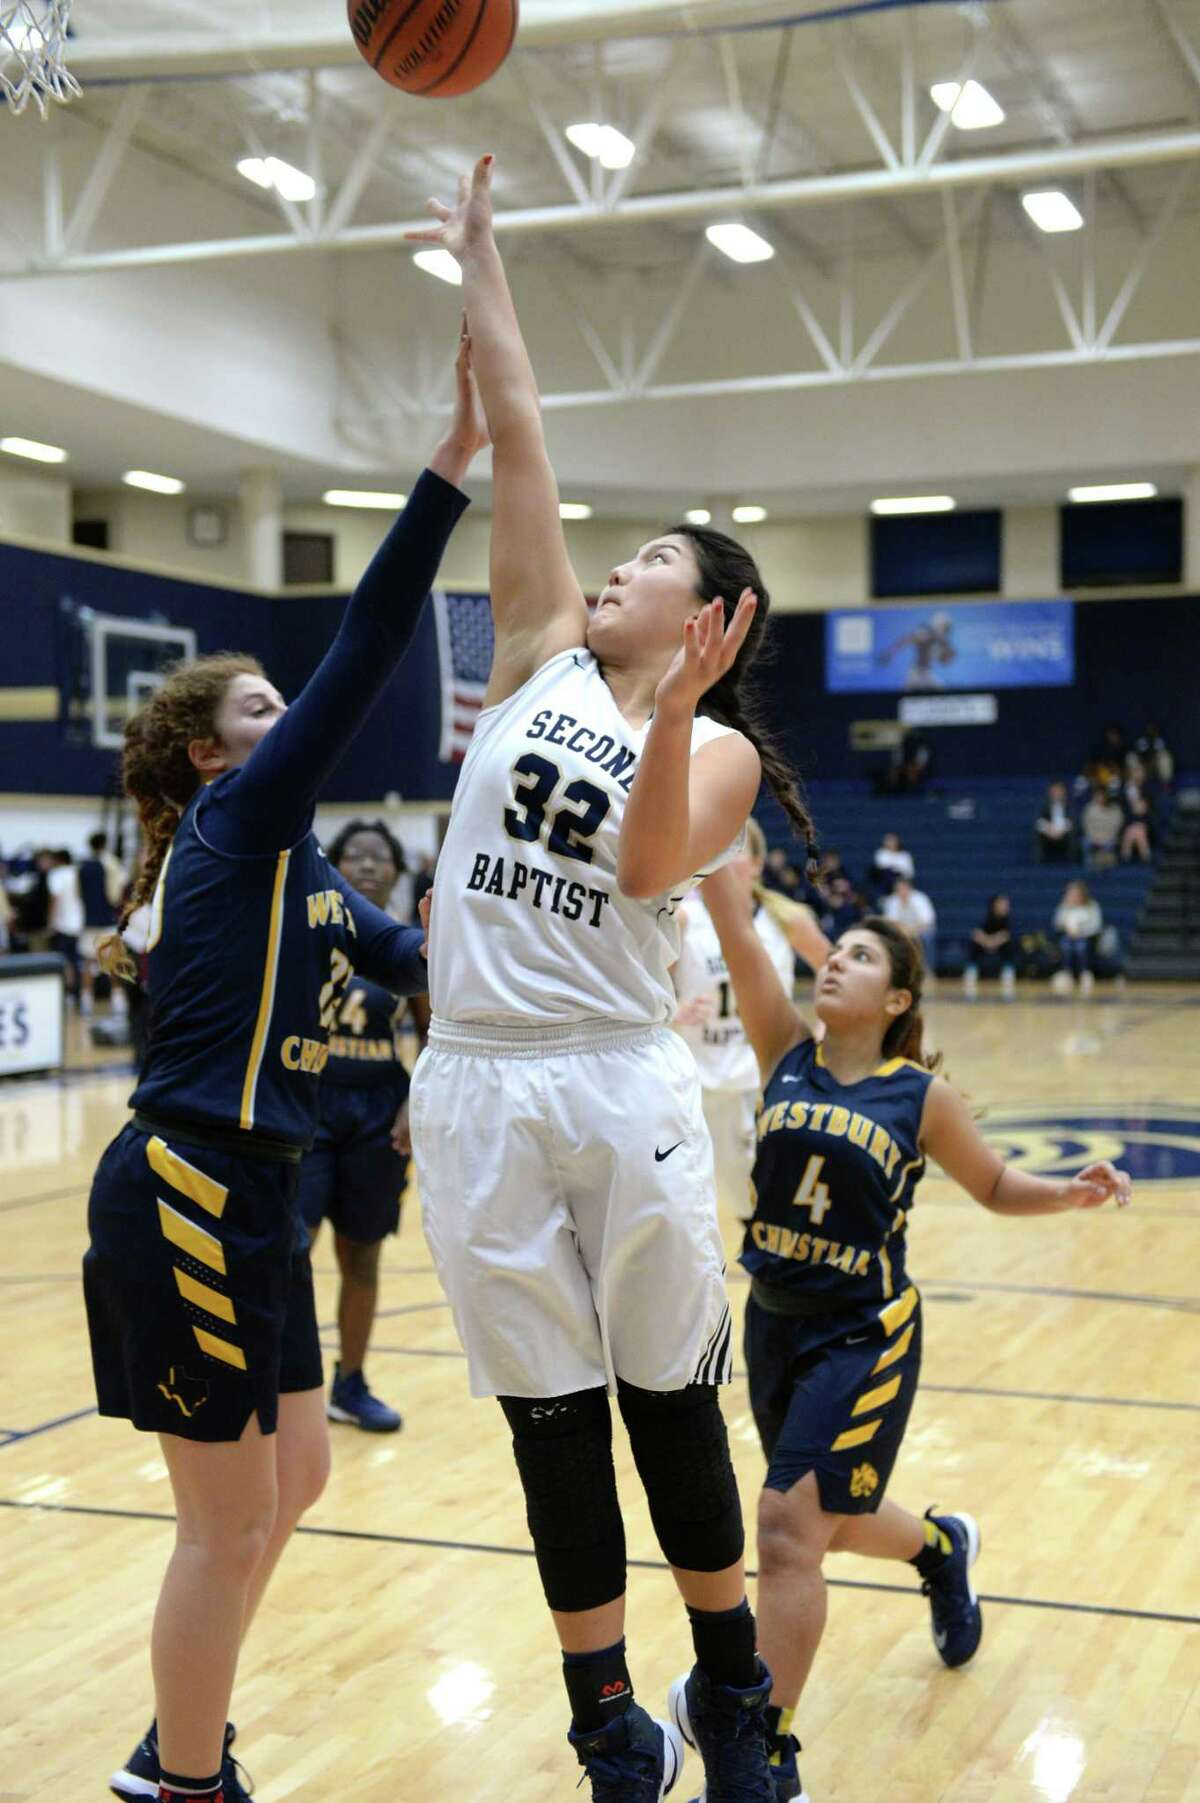 Mackenzie Kim (32) of Second Baptist attempts a shot during the second half of a varsity girls basketball game between Second Baptist Eagles and the Westbury Christian Wildcats on Tuesday January 9, 2018 at Second Baptist, Houston, TX.